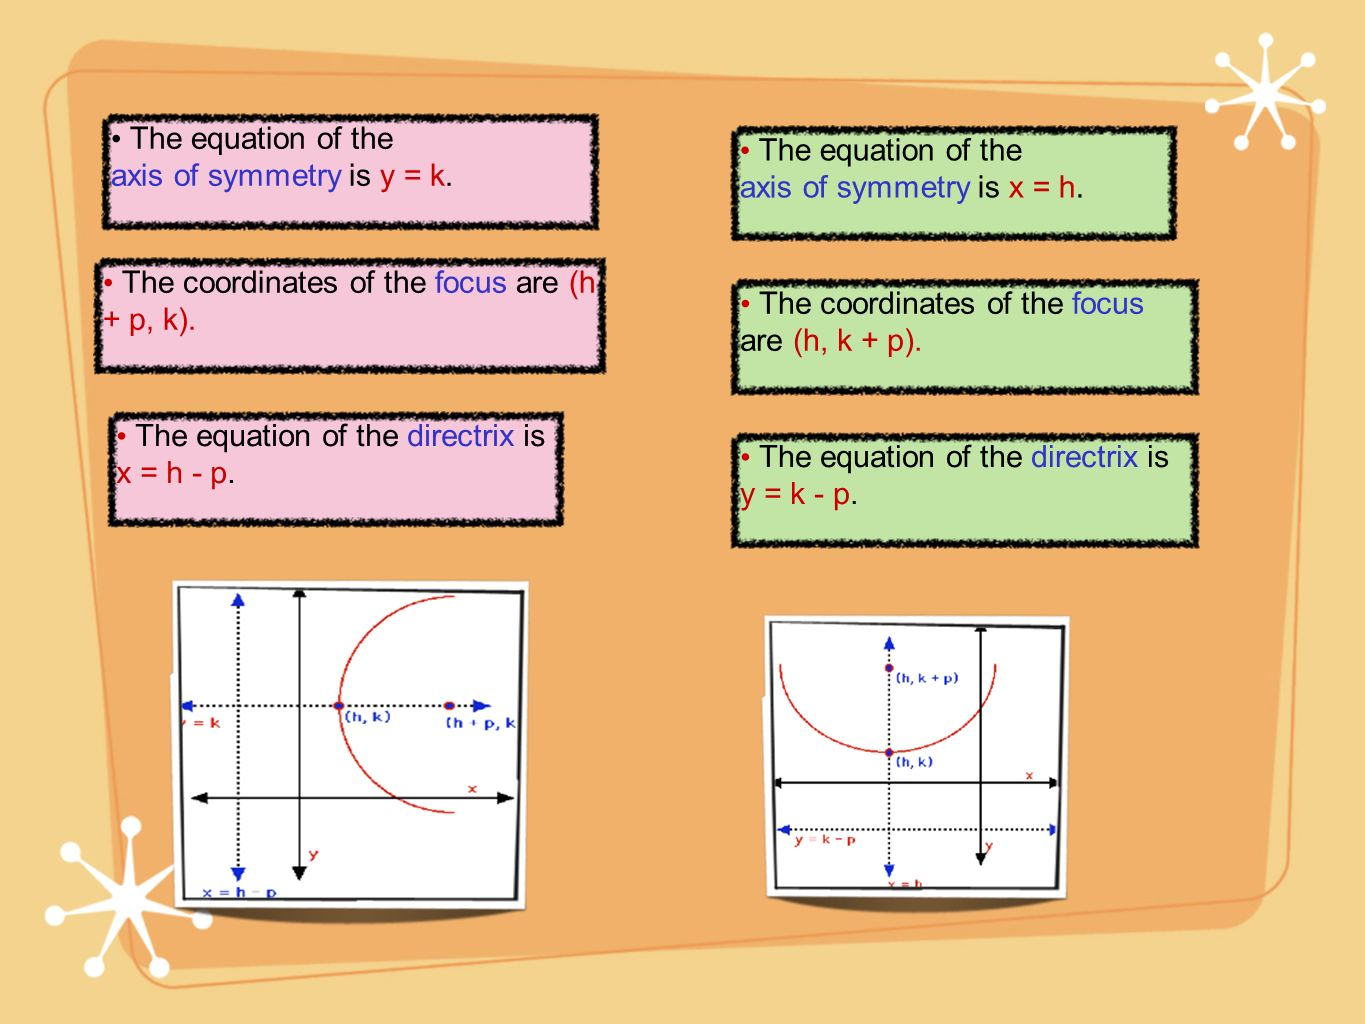 The equation of the axis of symmetry is y = k. The equation of the. axis of symmetry is x = h. The coordinates of the focus are (h + p, k).